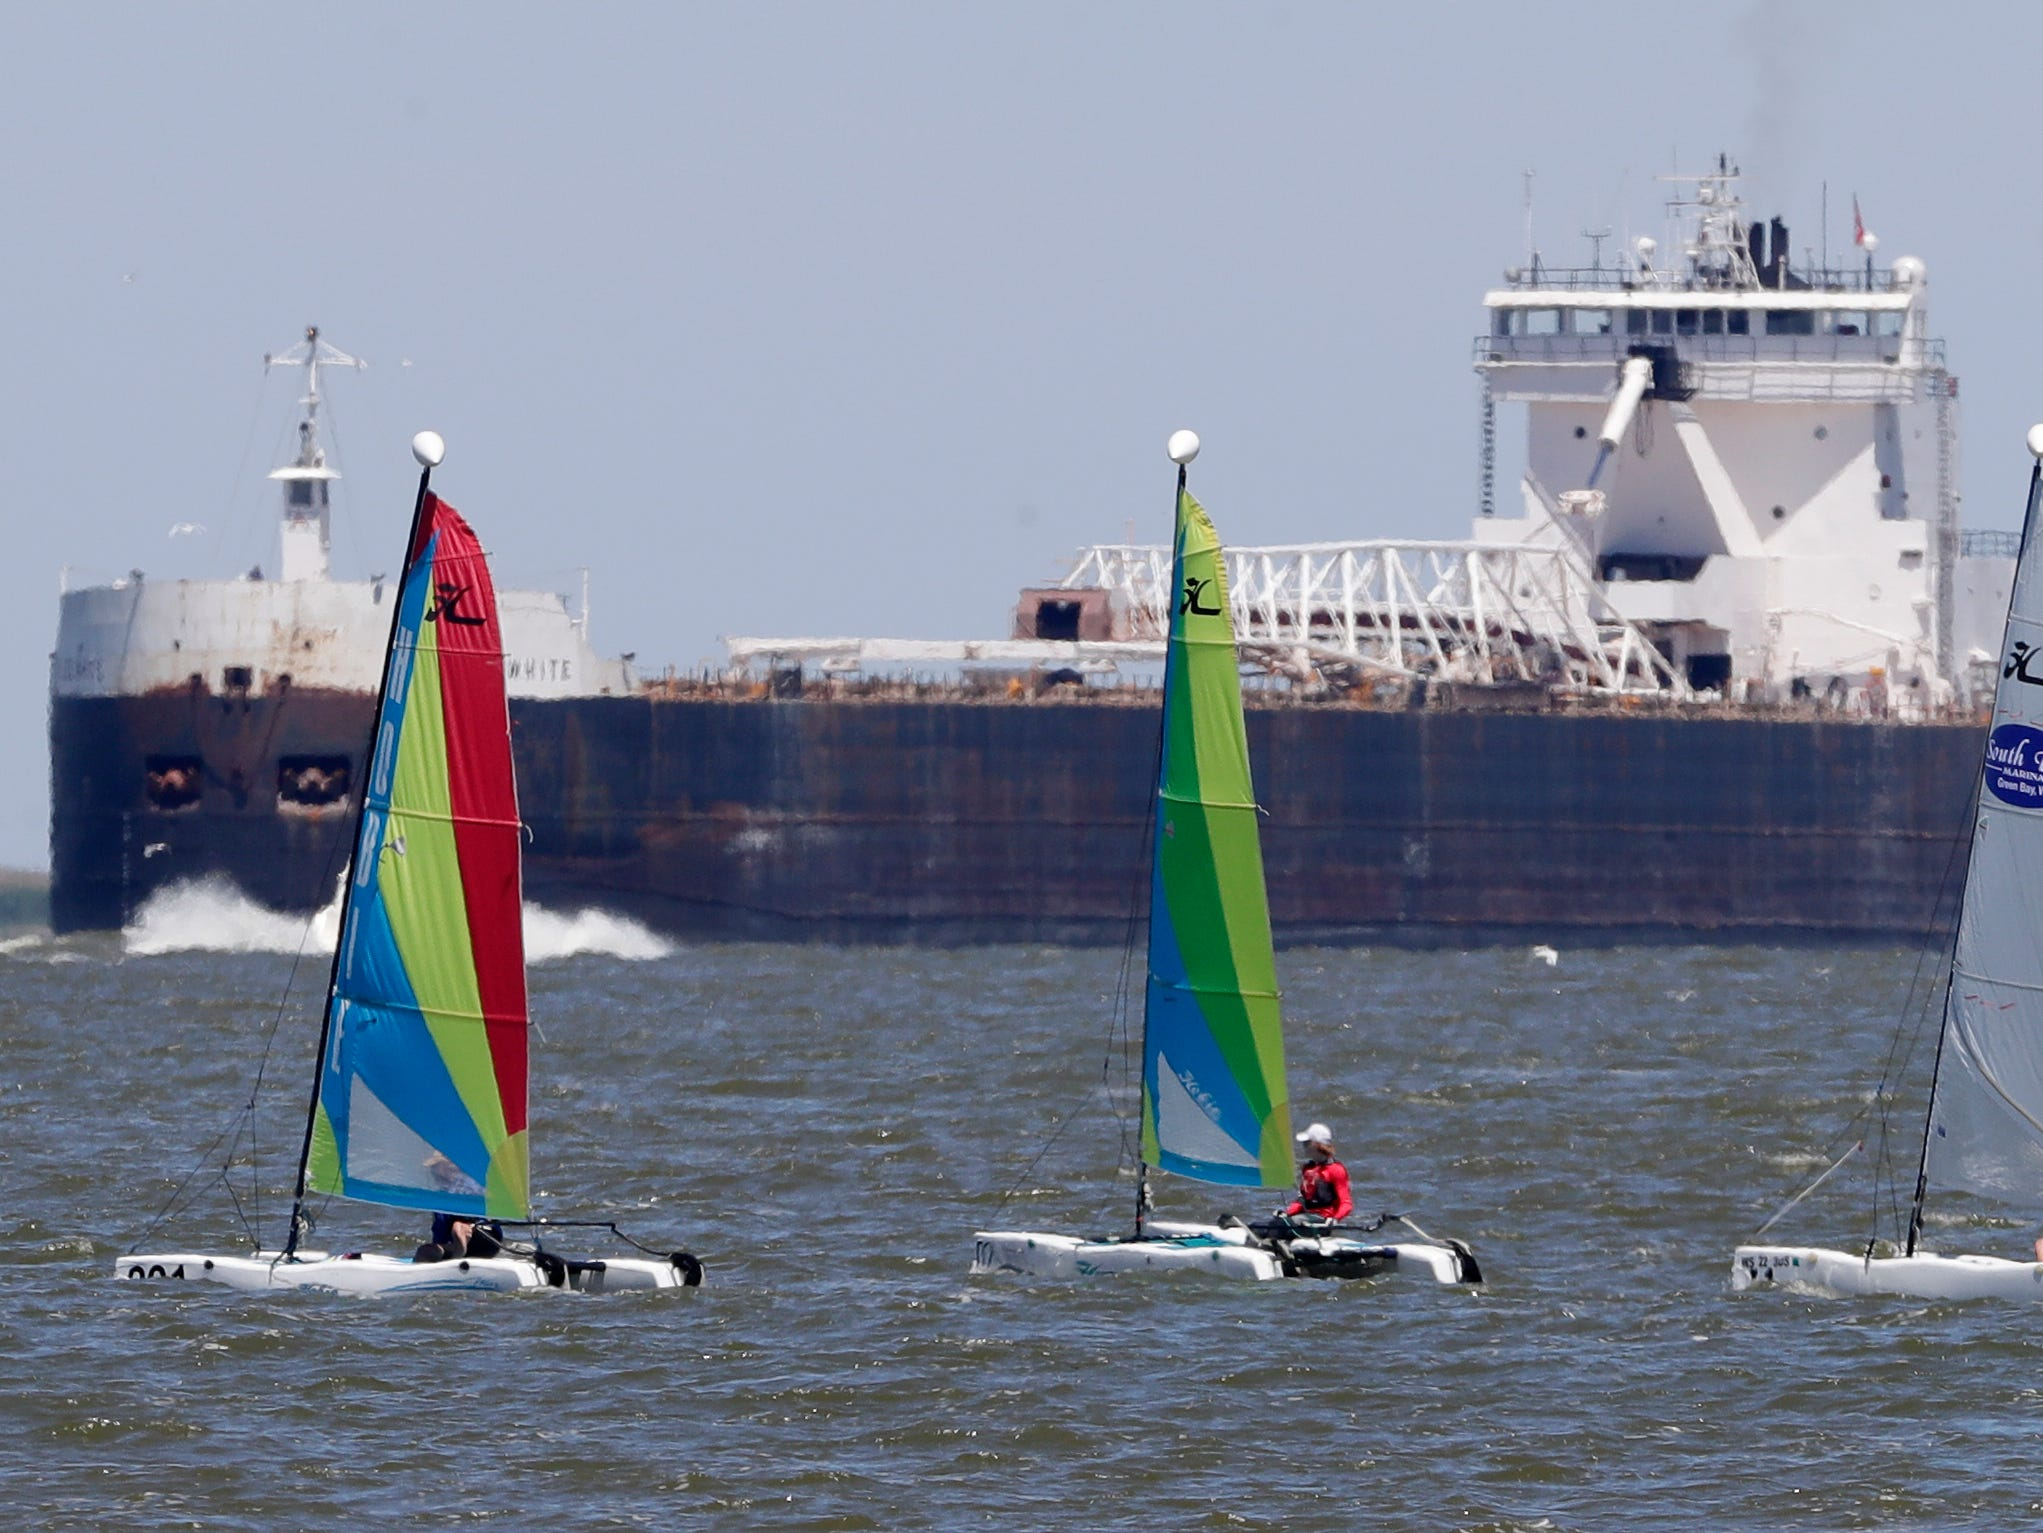 Laser sailboats round the mark as a freighter heads into the Port of Green Bay